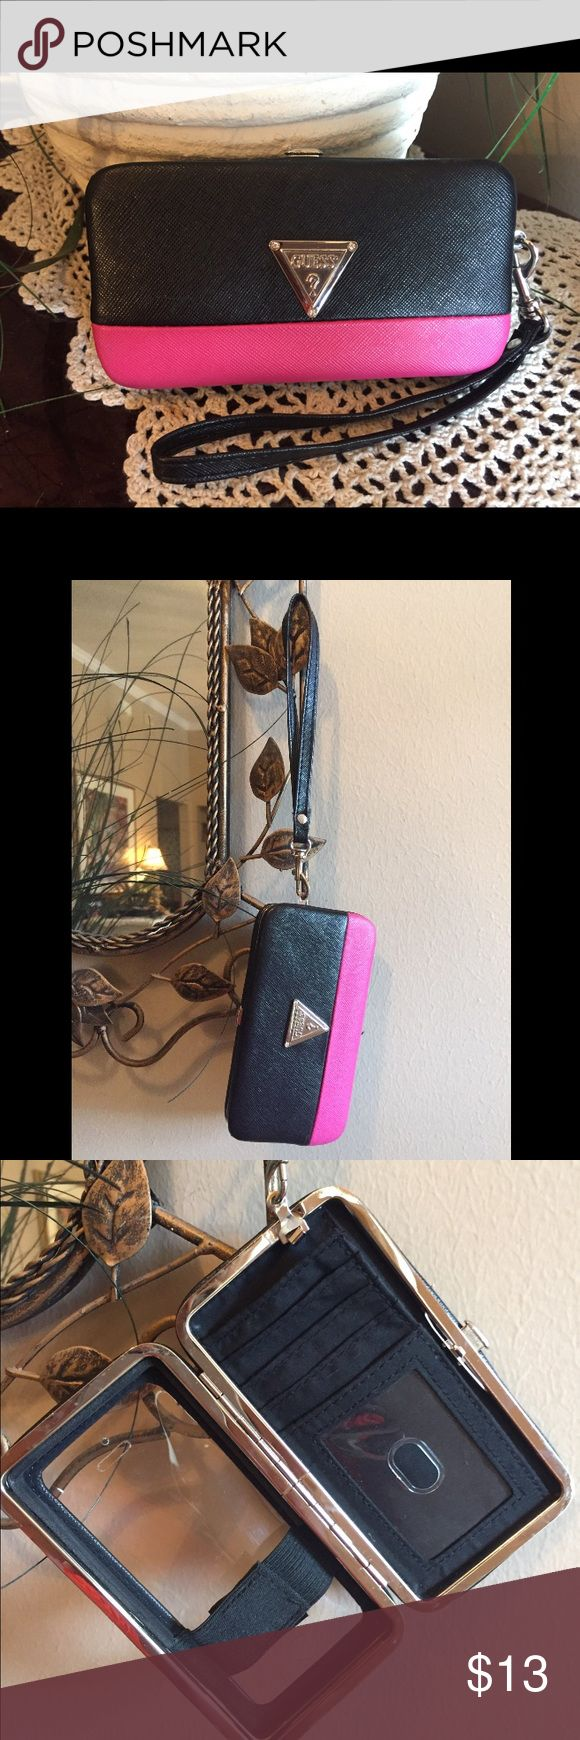 GUESS 5/5s iPhone Holder/Case📱 Beautiful Guess iPhone 5/5s Holder/Wallet. Black/pink with silver Guess logo, new condition . Guess Accessories Phone Cases